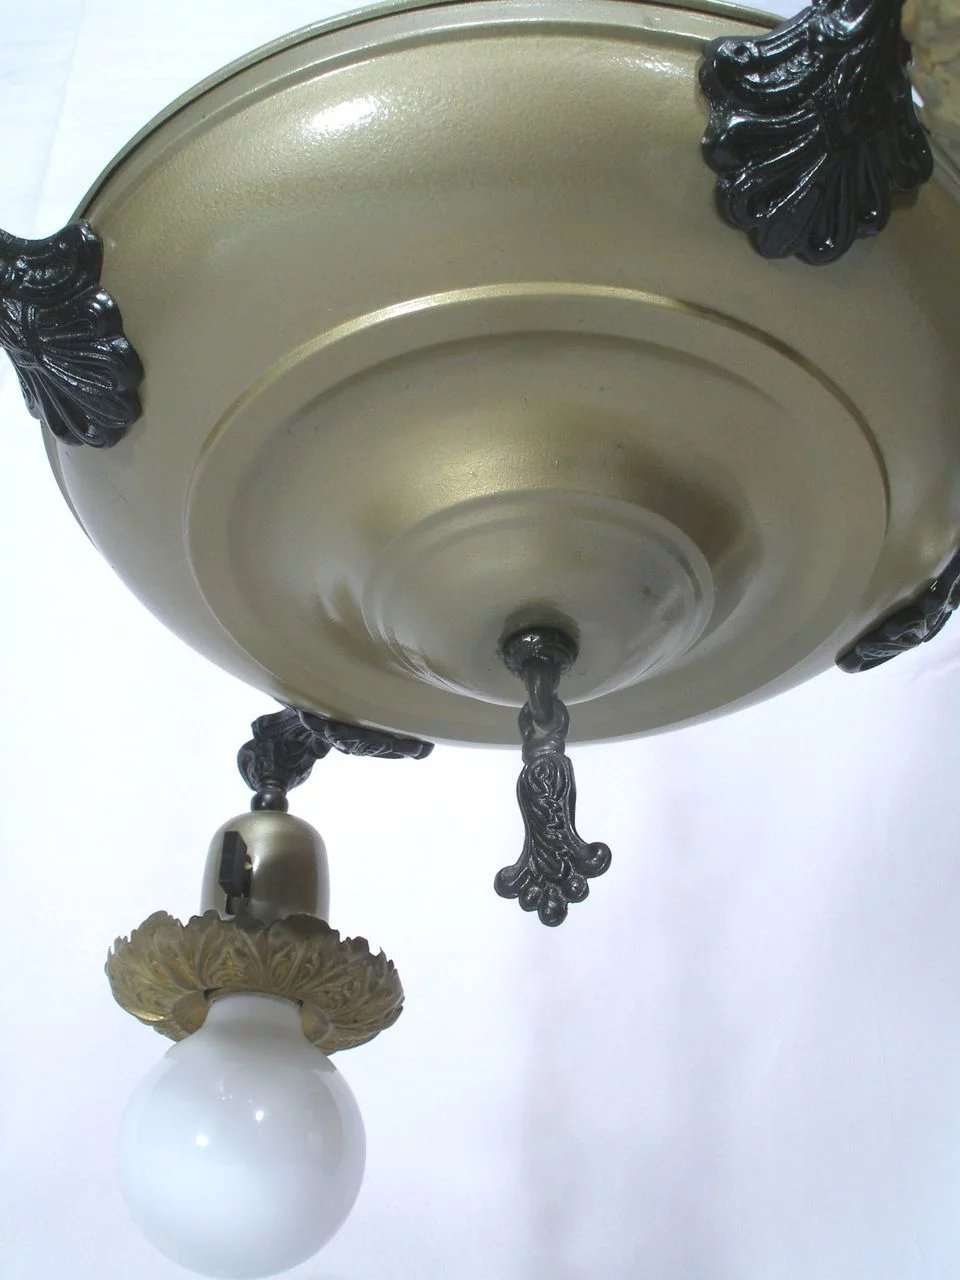 Vintage 4 Bell Dome Light Pan Flying Saucer Style